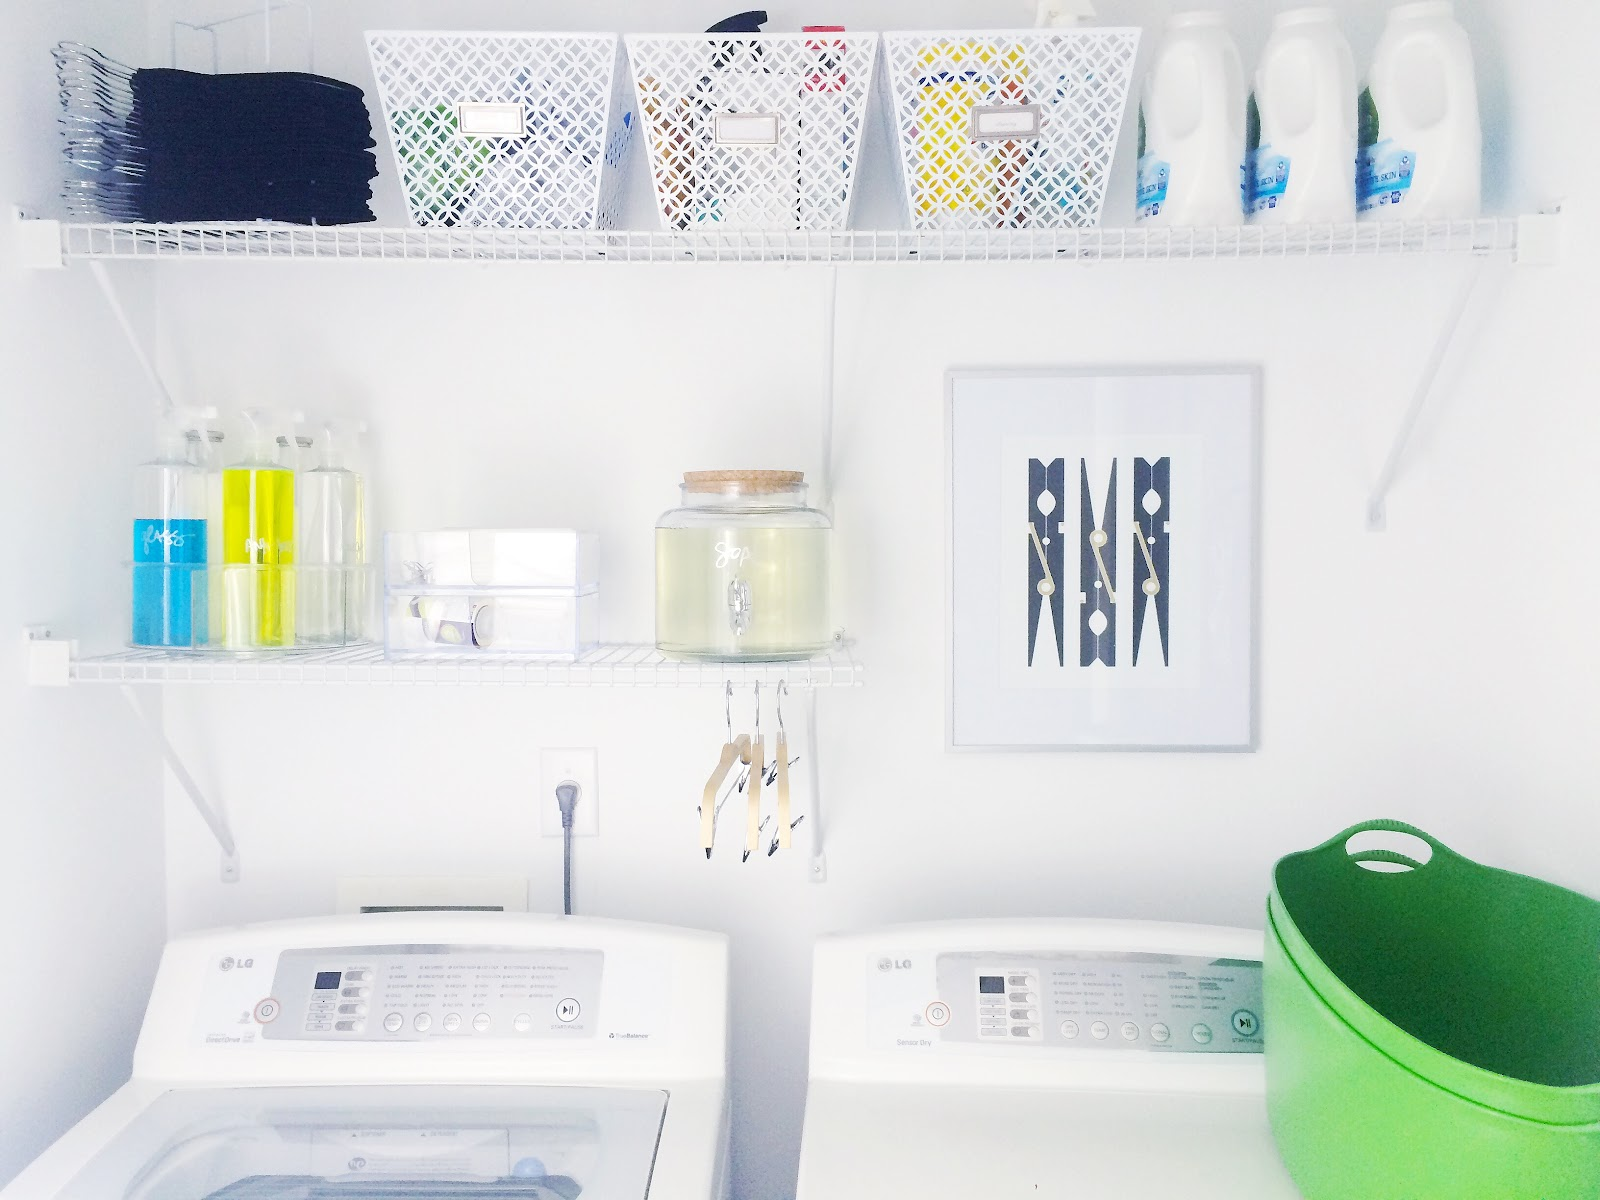 What are the benefits of a well organized interior